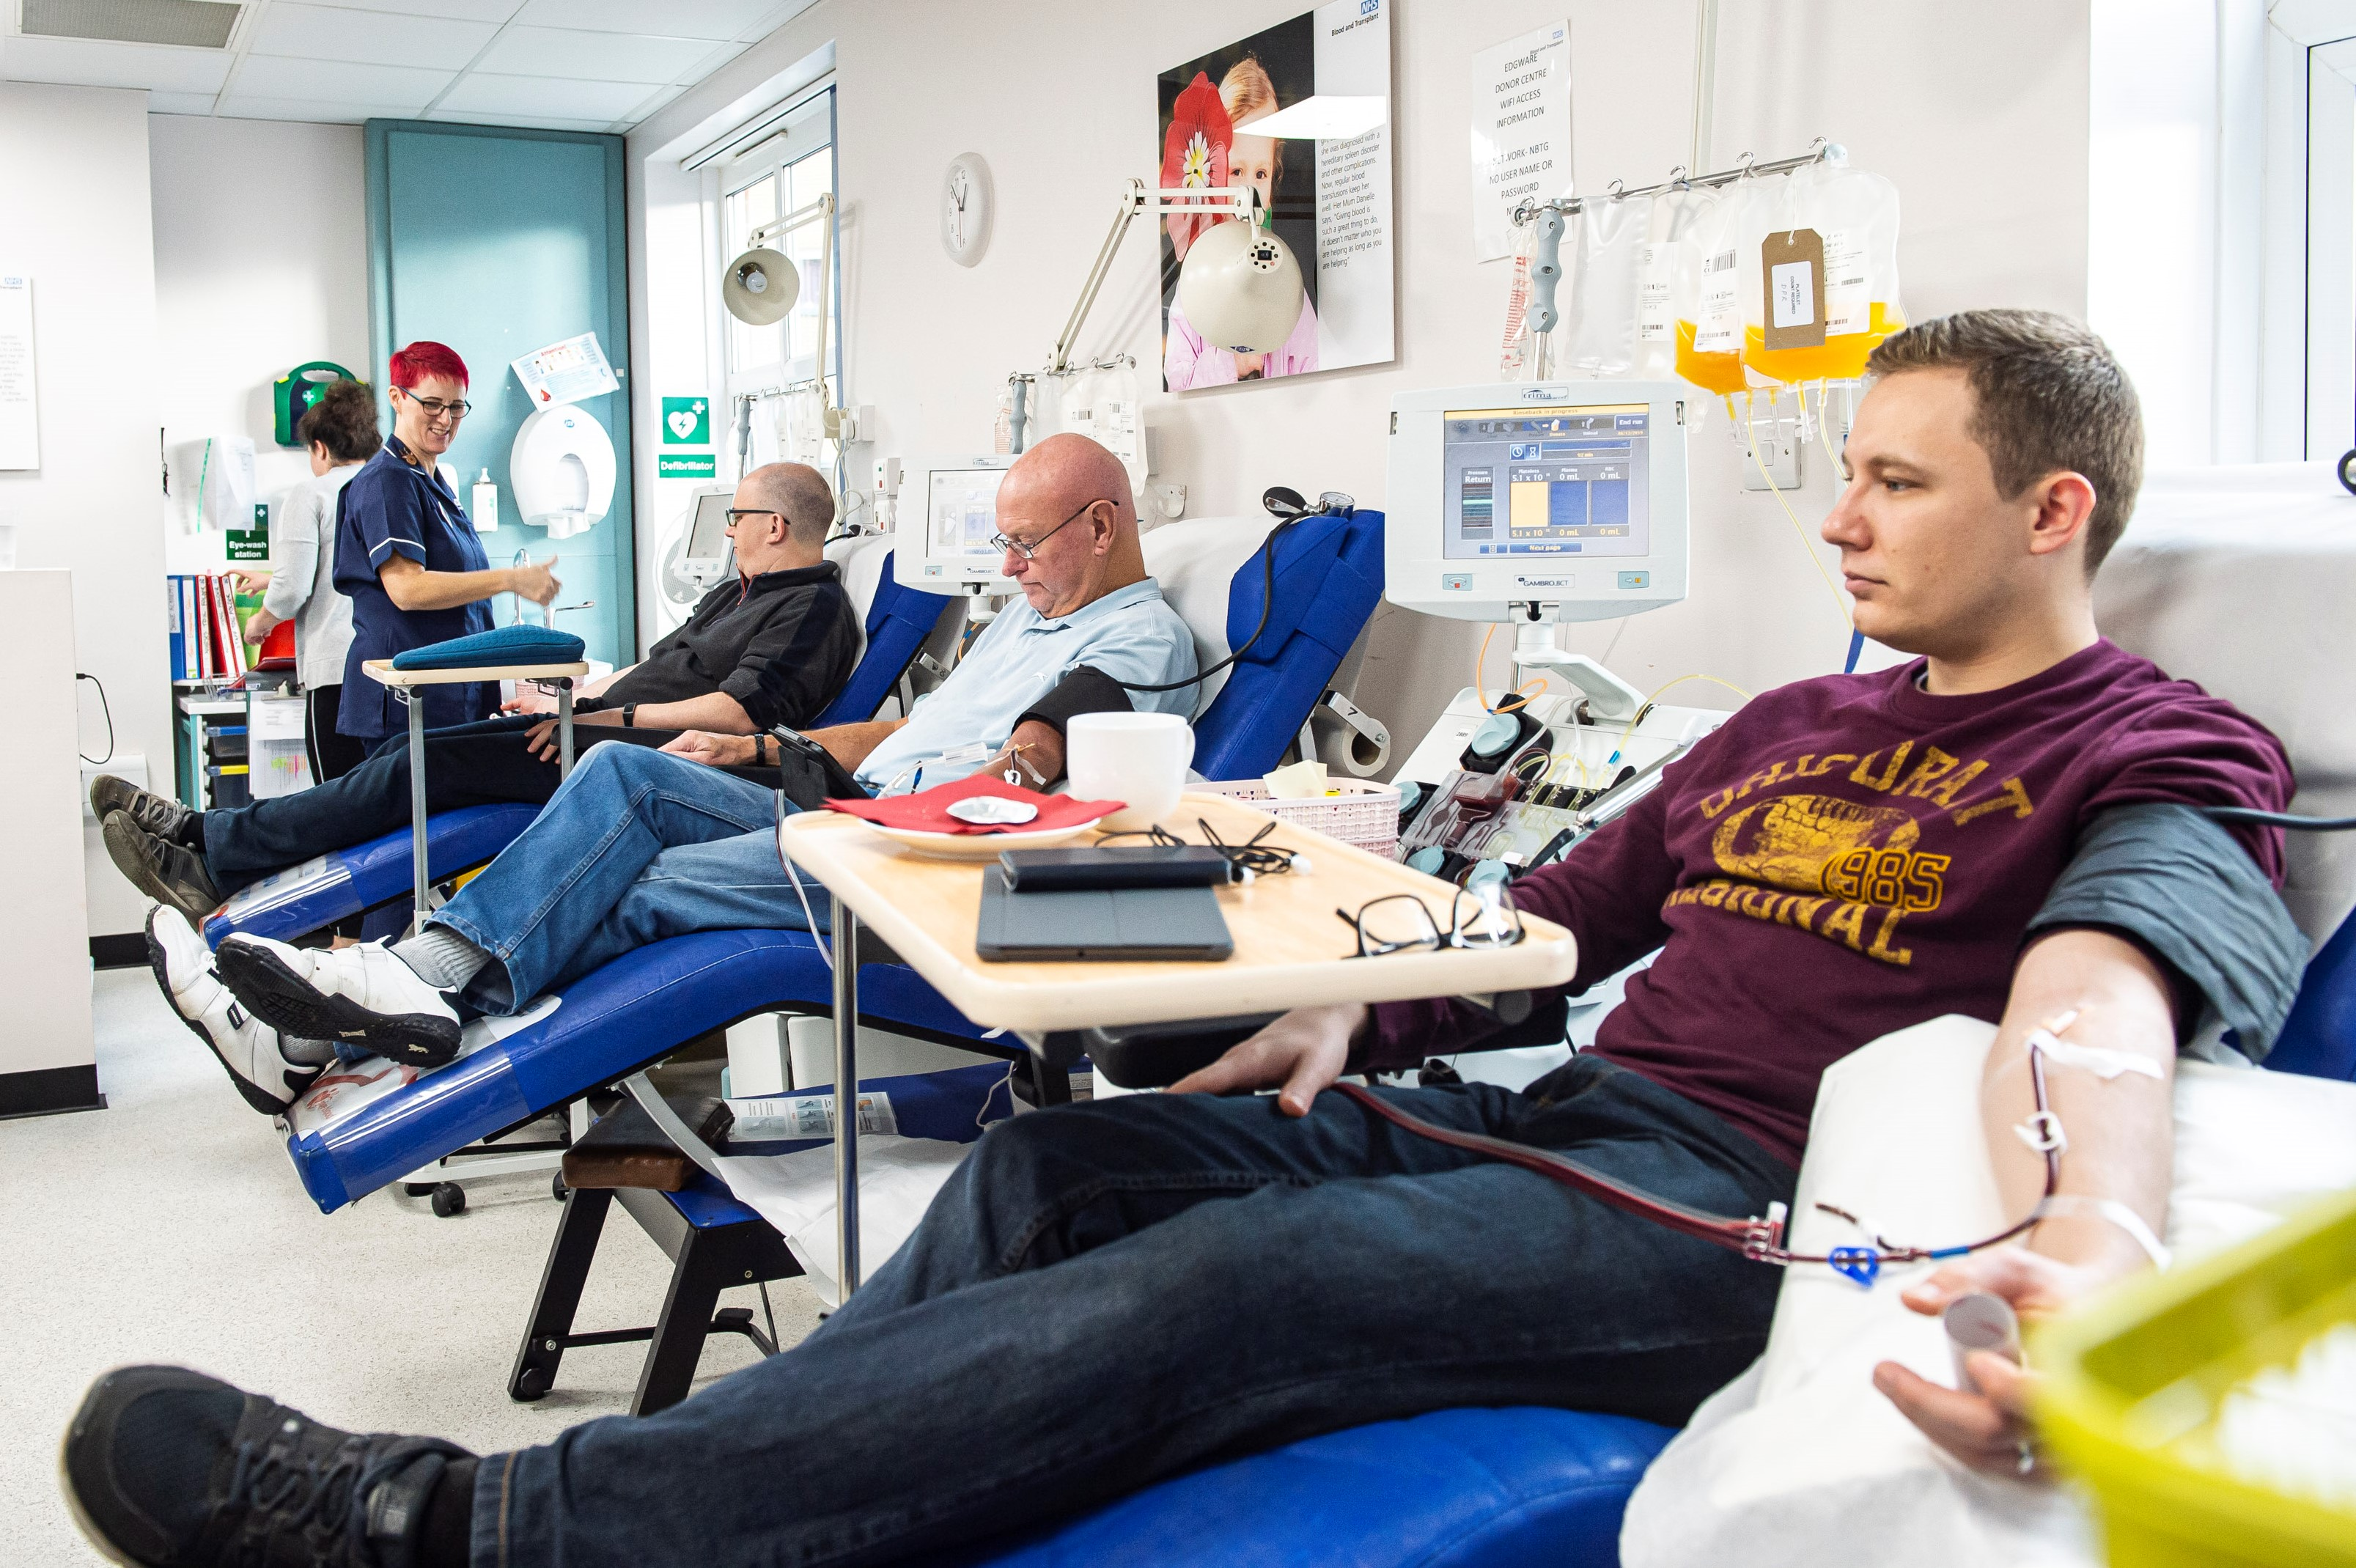 Donors crossing their legs